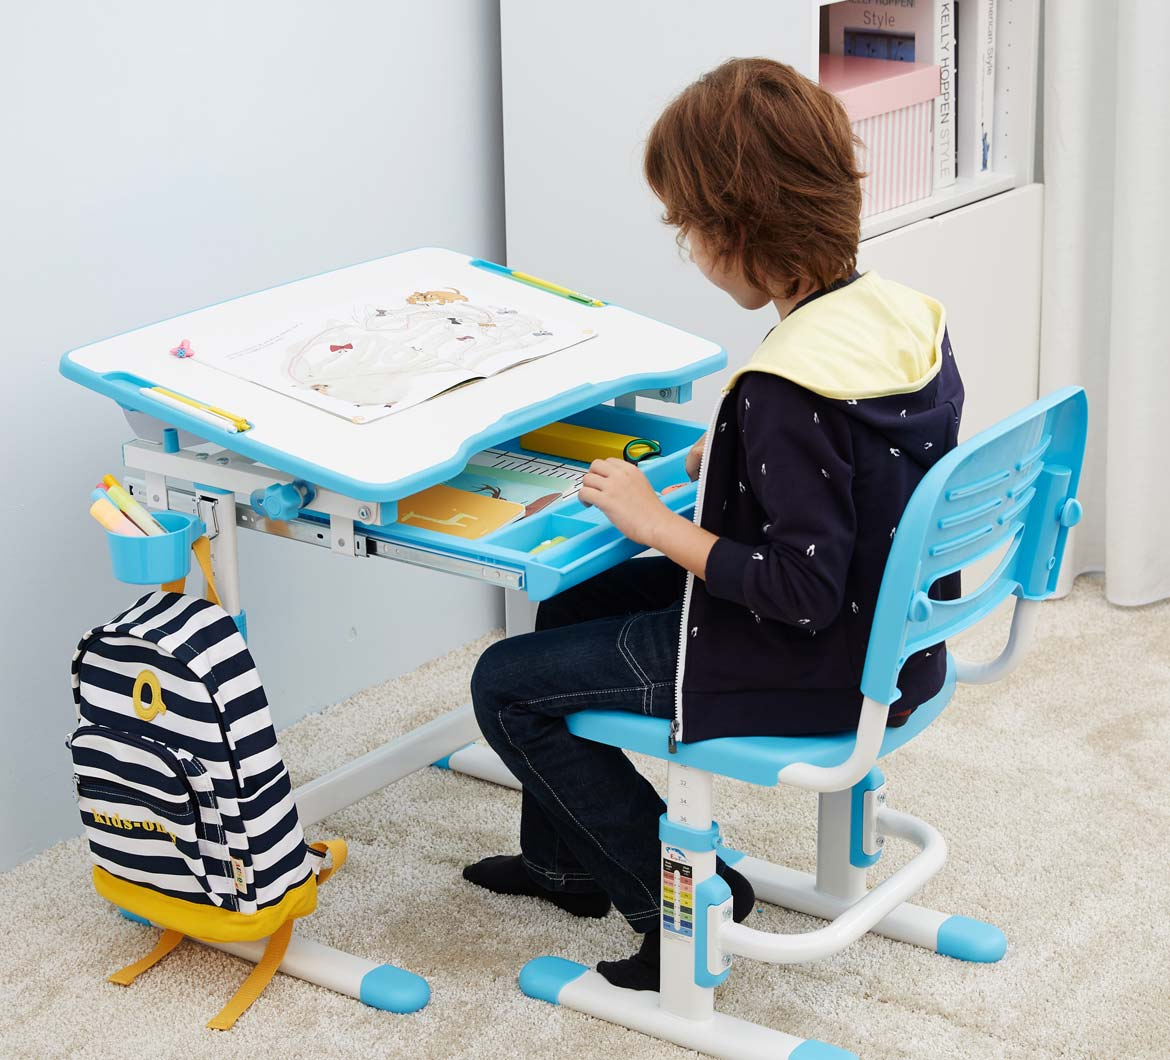 kids-table-chair-study-desk-with-tilt-desktop-blue-desk-for-boys-and-girls-portfolio-mini-blue-2